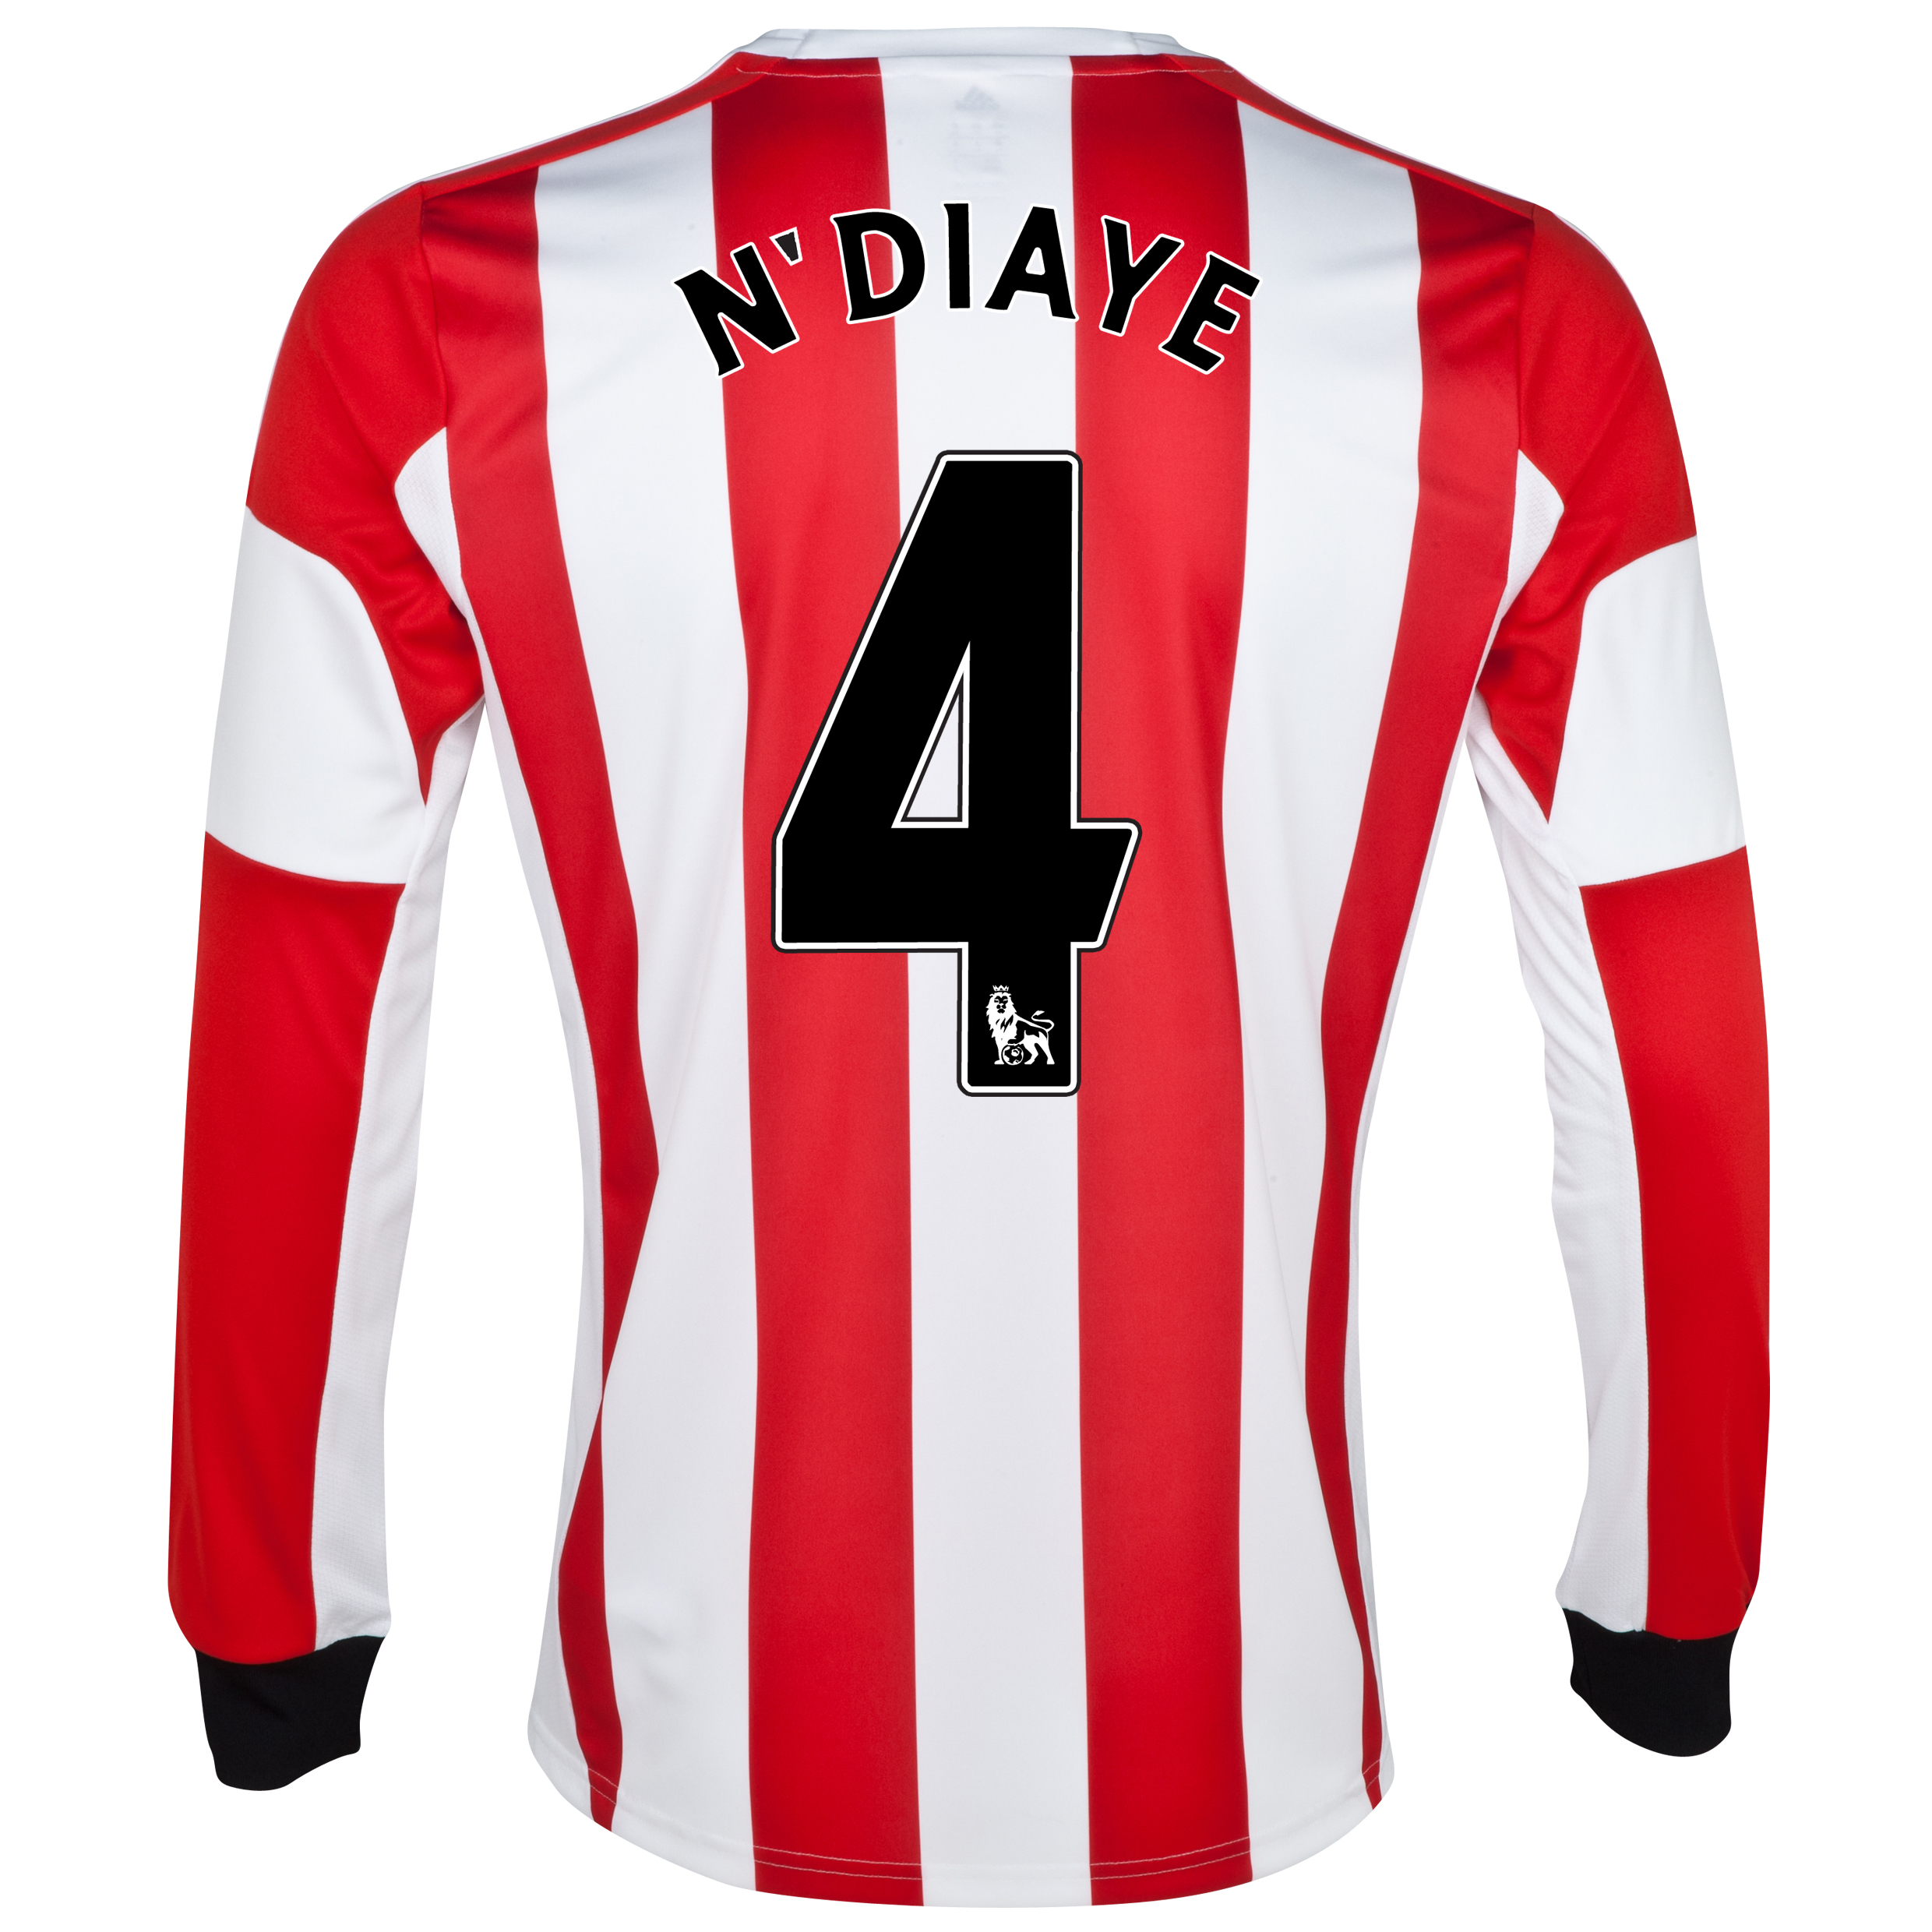 Sunderland Home Shirt 2013/14 - Long Sleeved  with N'Diaye 4 printing